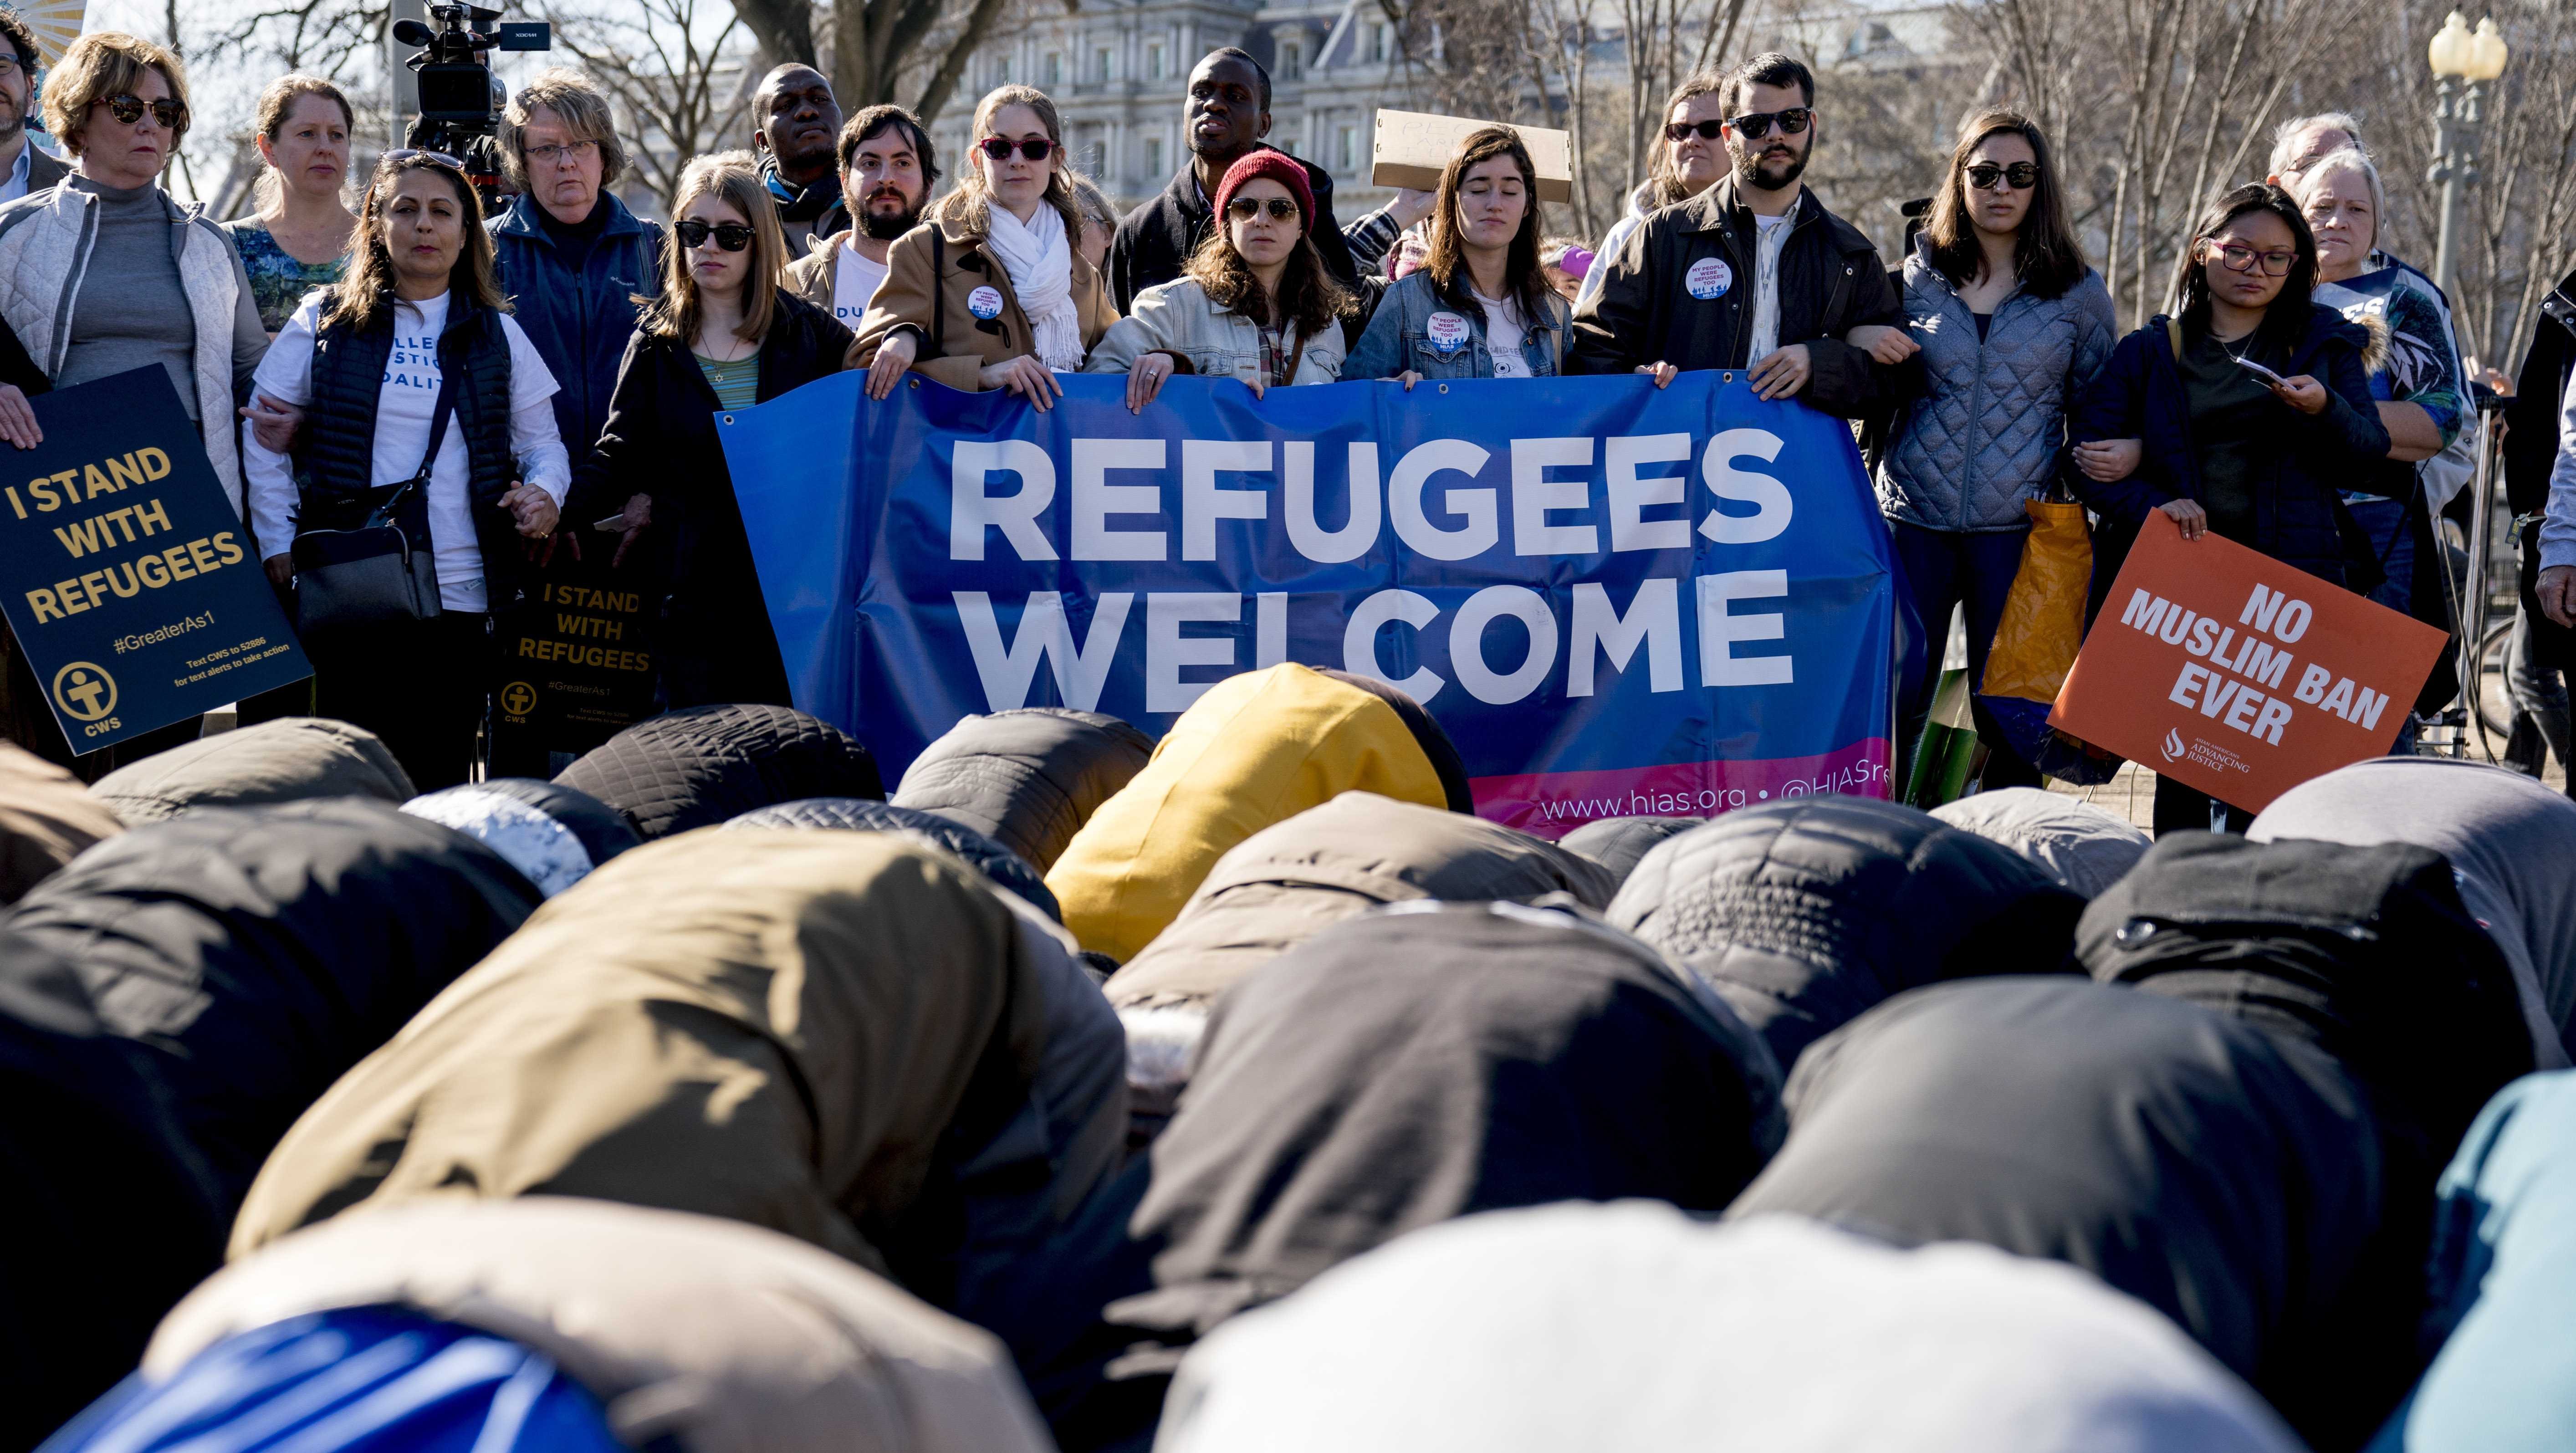 Supporters surround a group who perform the Islamic midday prayer outside the White House in Washington, Saturday, Jan. 27, 2018, during a rally on the one-year anniversary of the Trump Administration's first partial travel ban on citizens from seven Muslim majority countries.